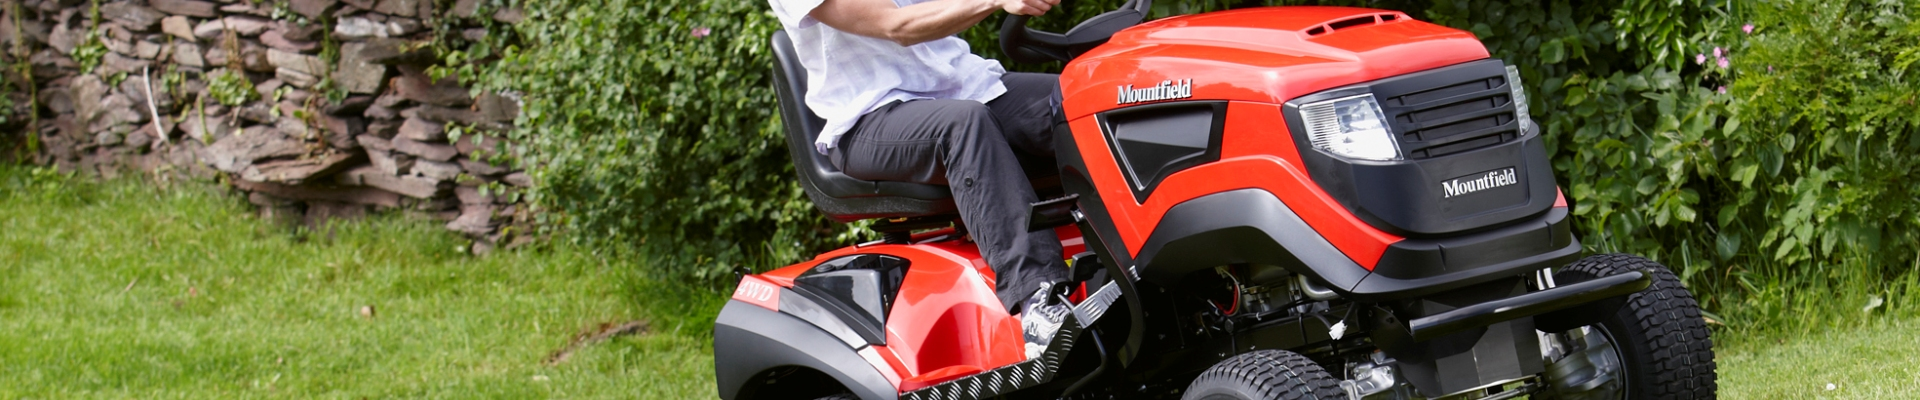 mountfield-mower-slider-4